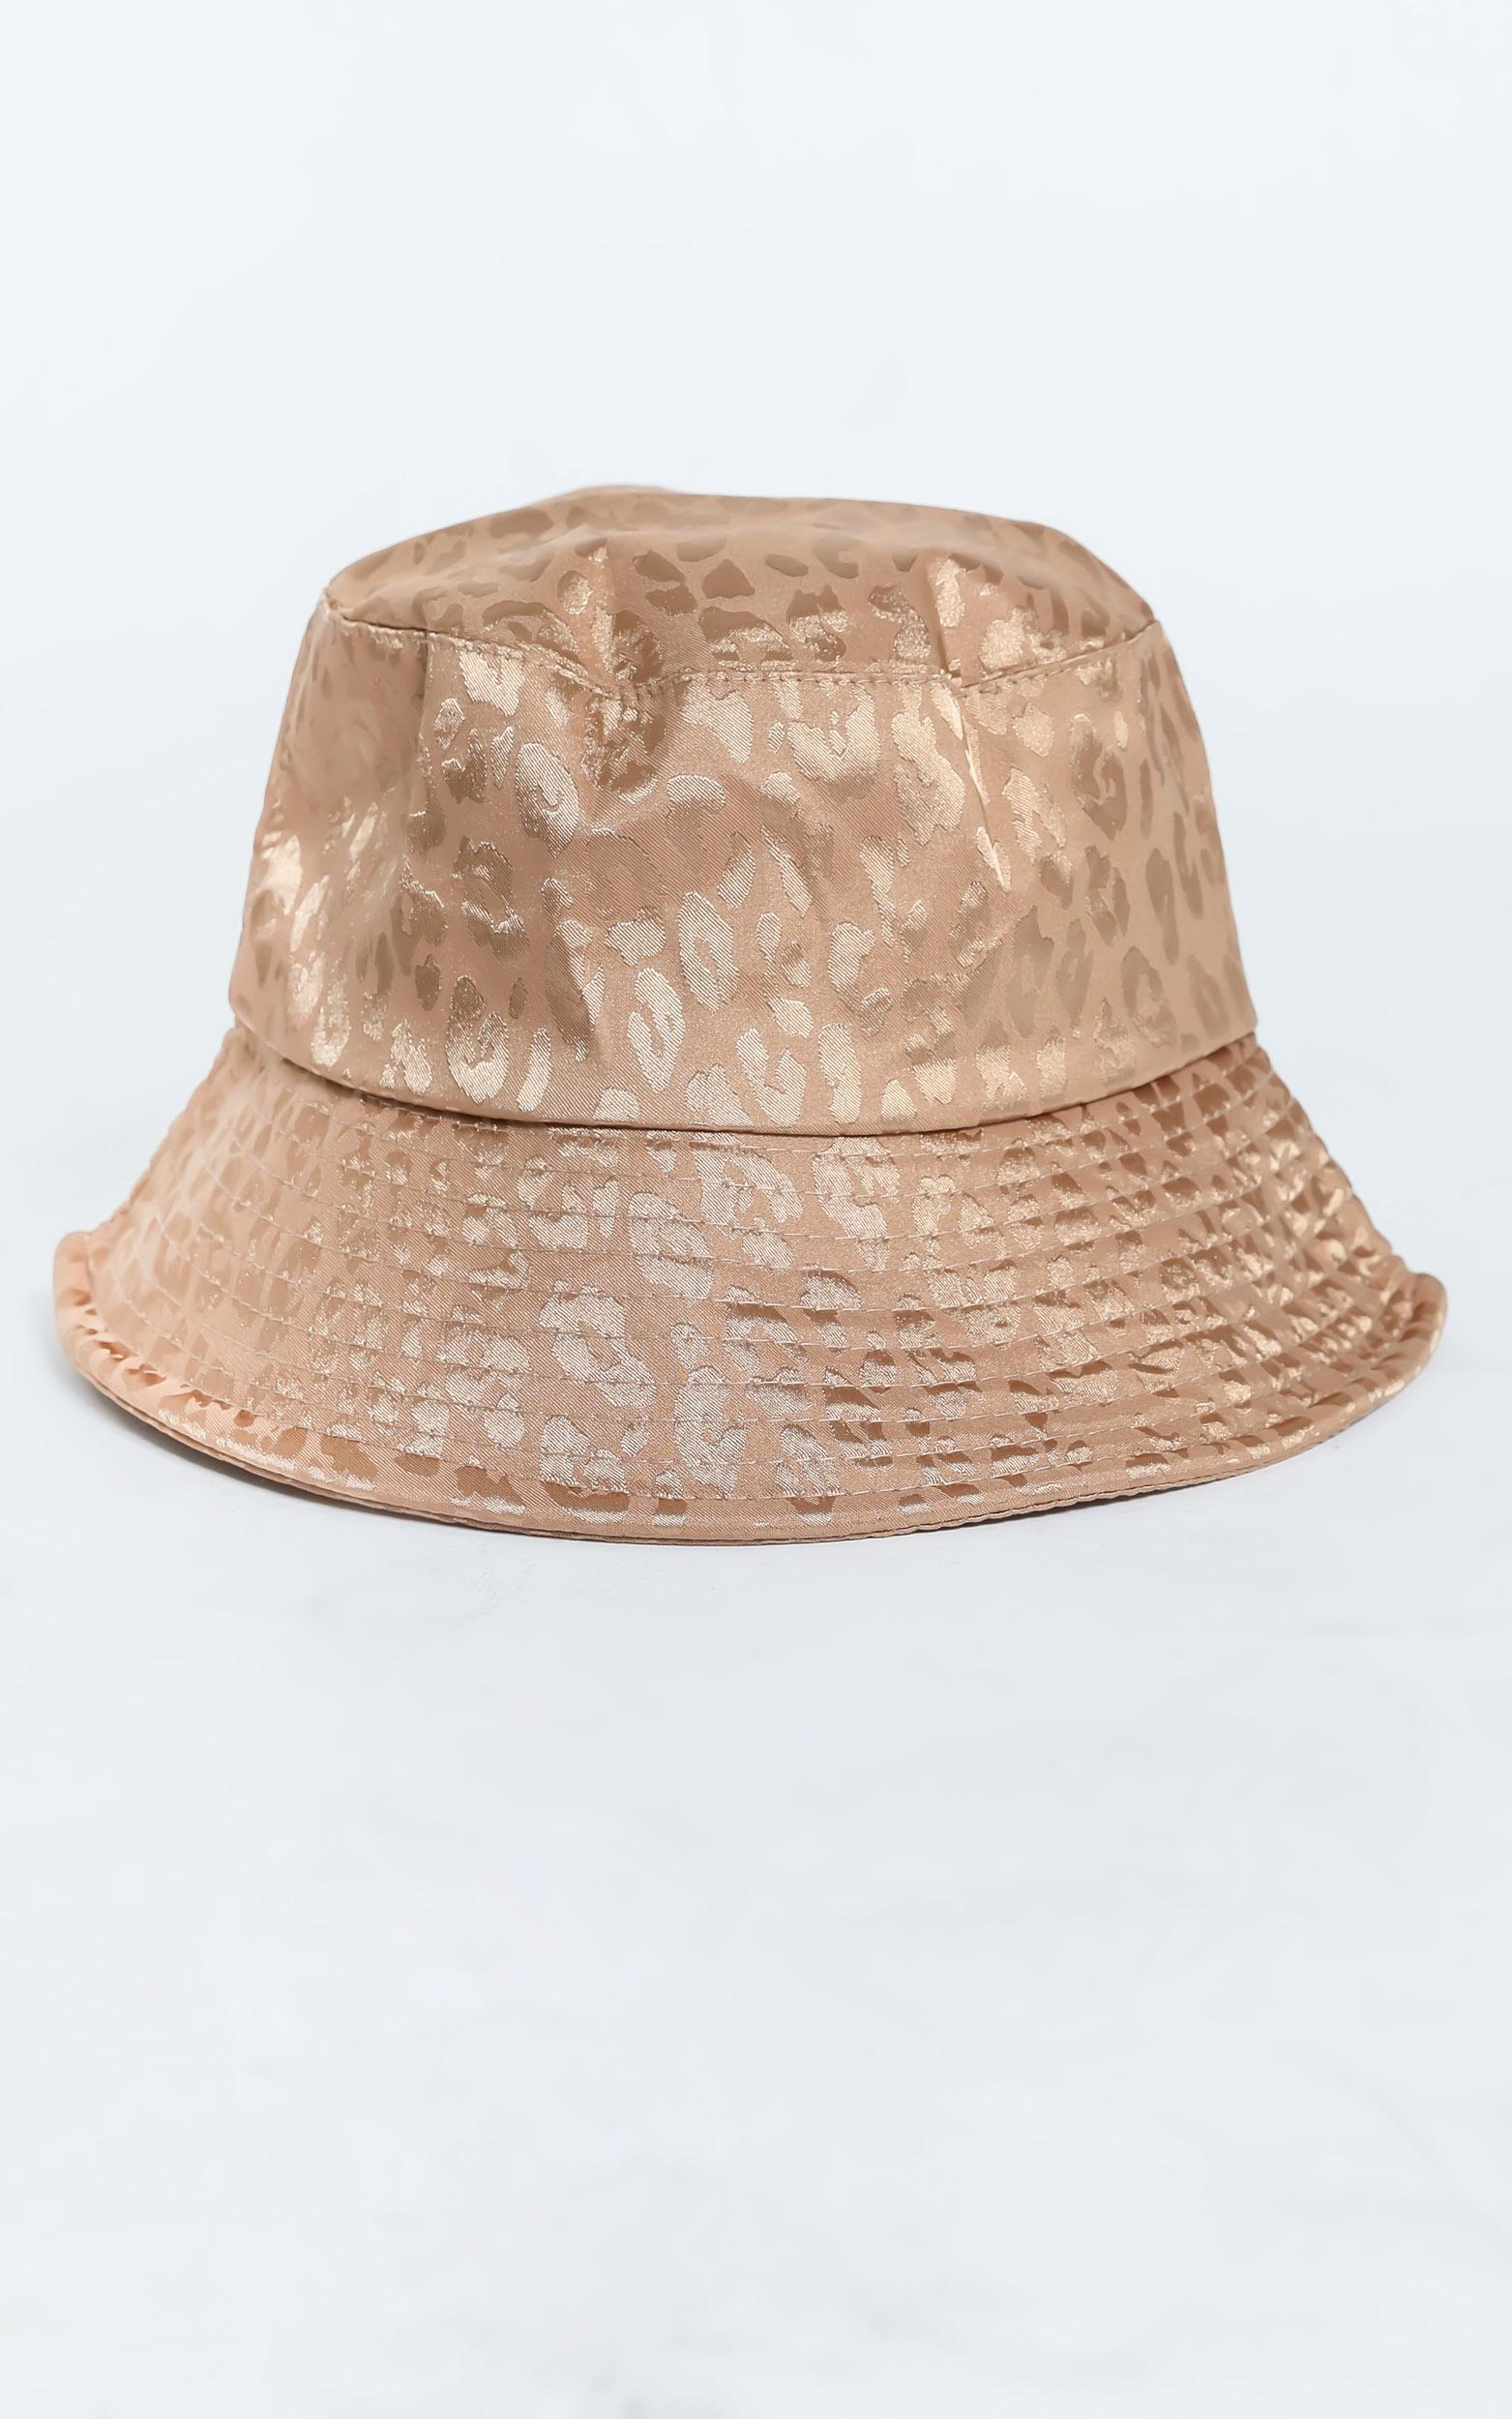 Thania Hat in Beige Leopard, , hi-res image number null